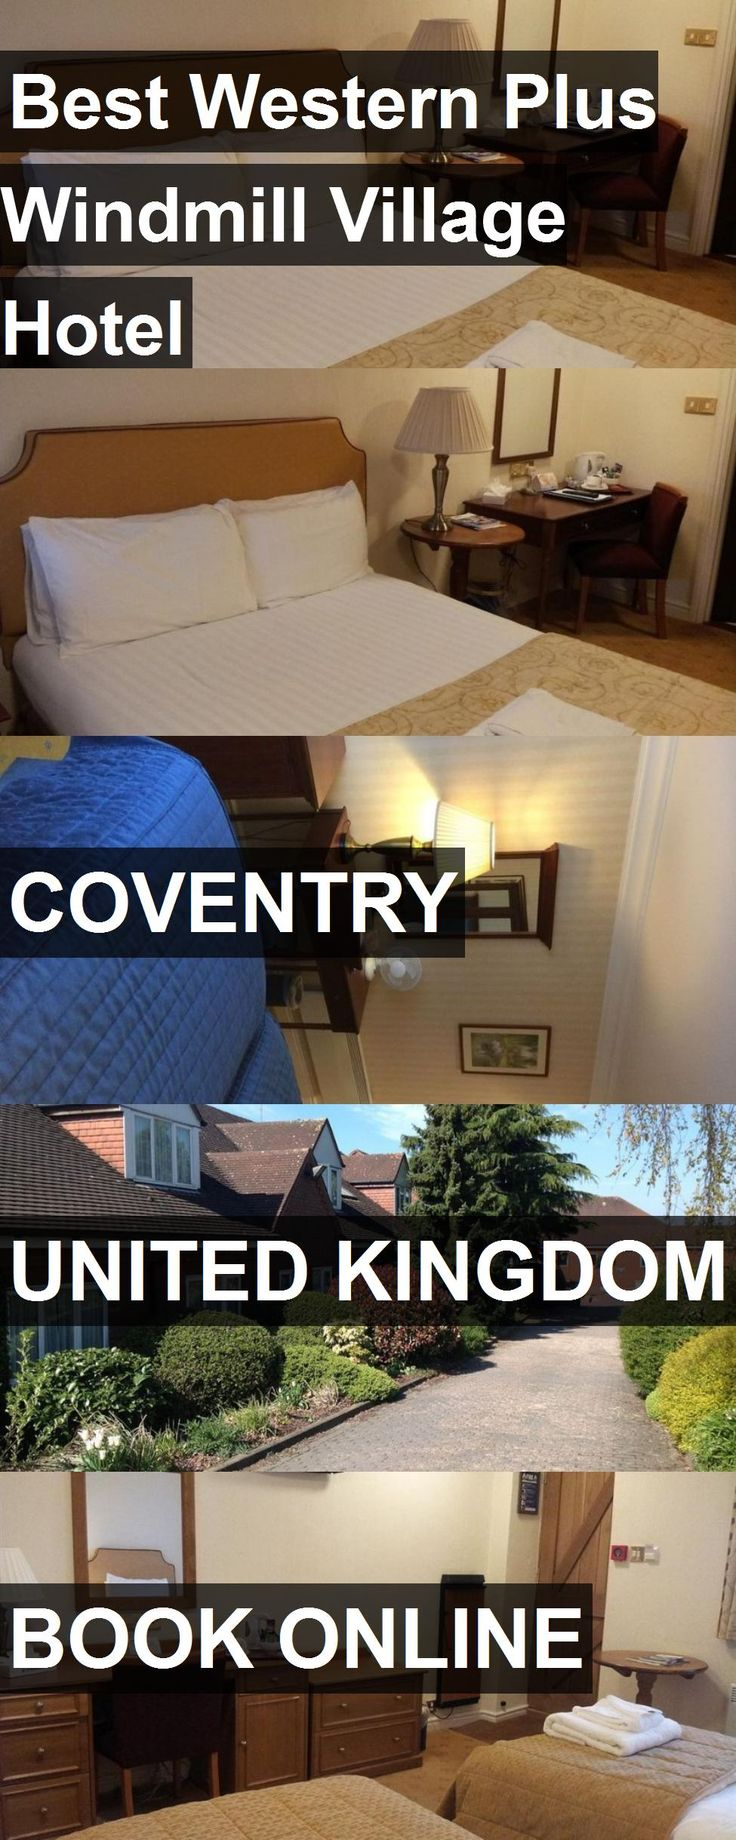 Hotel Best Western Plus Windmill Village Hotel in Coventry, United Kingdom. For more information, photos, reviews and best prices please follow the link. #UnitedKingdom #Coventry #hotel #travel #vacation